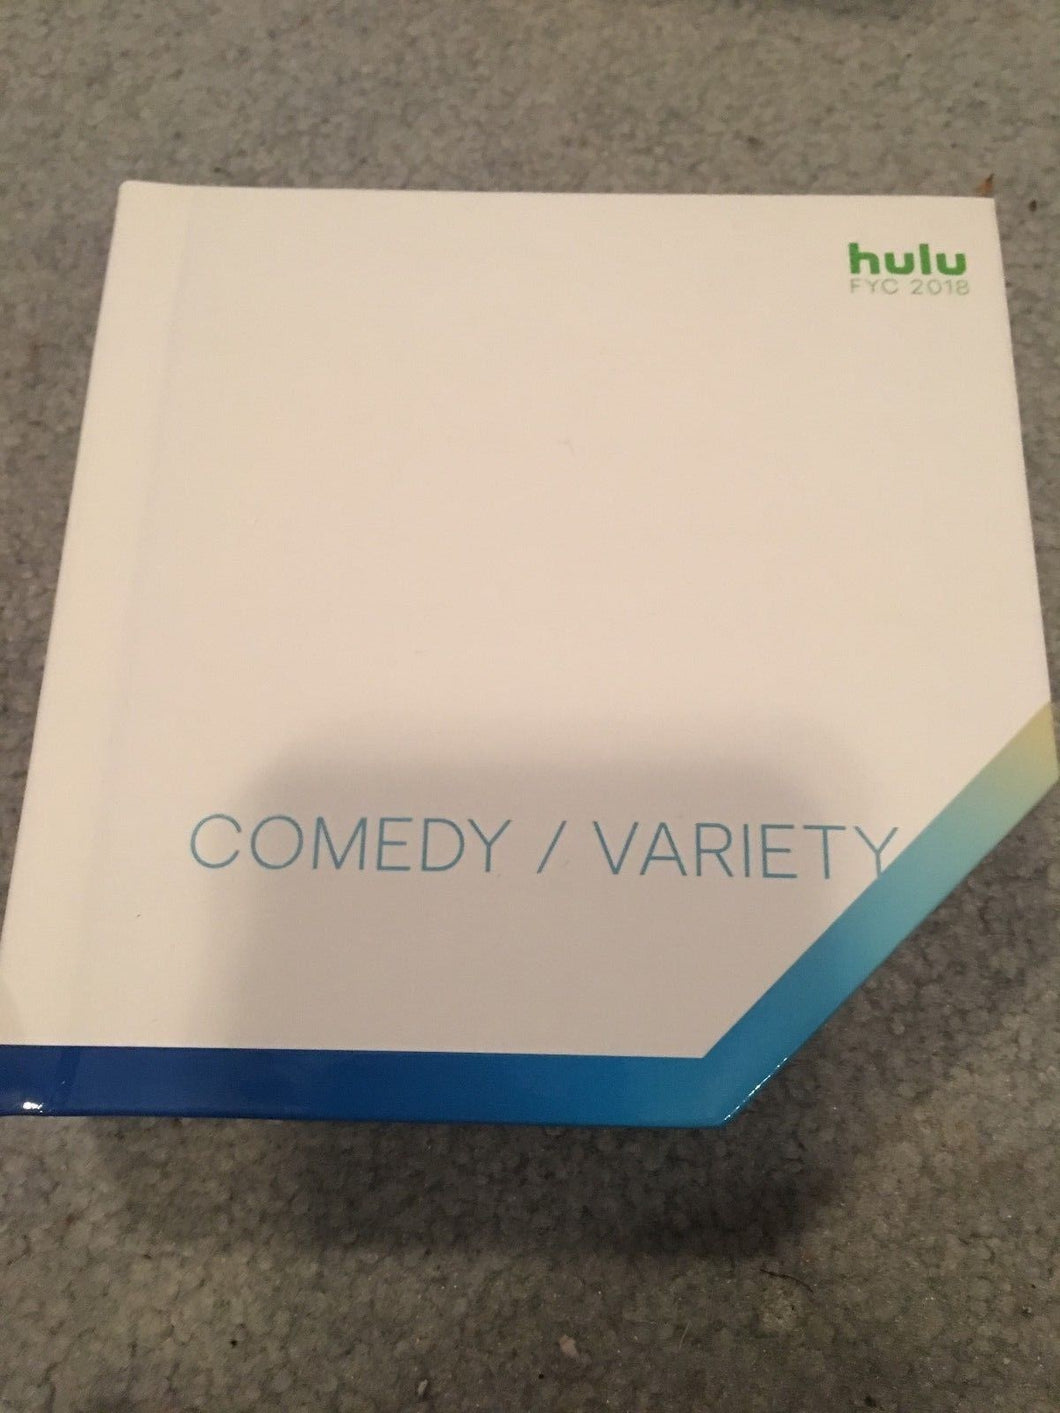 FYC 2018 Hulu-Comedy/Variety Pressbook-For Your Emmy Consideration (DVD)